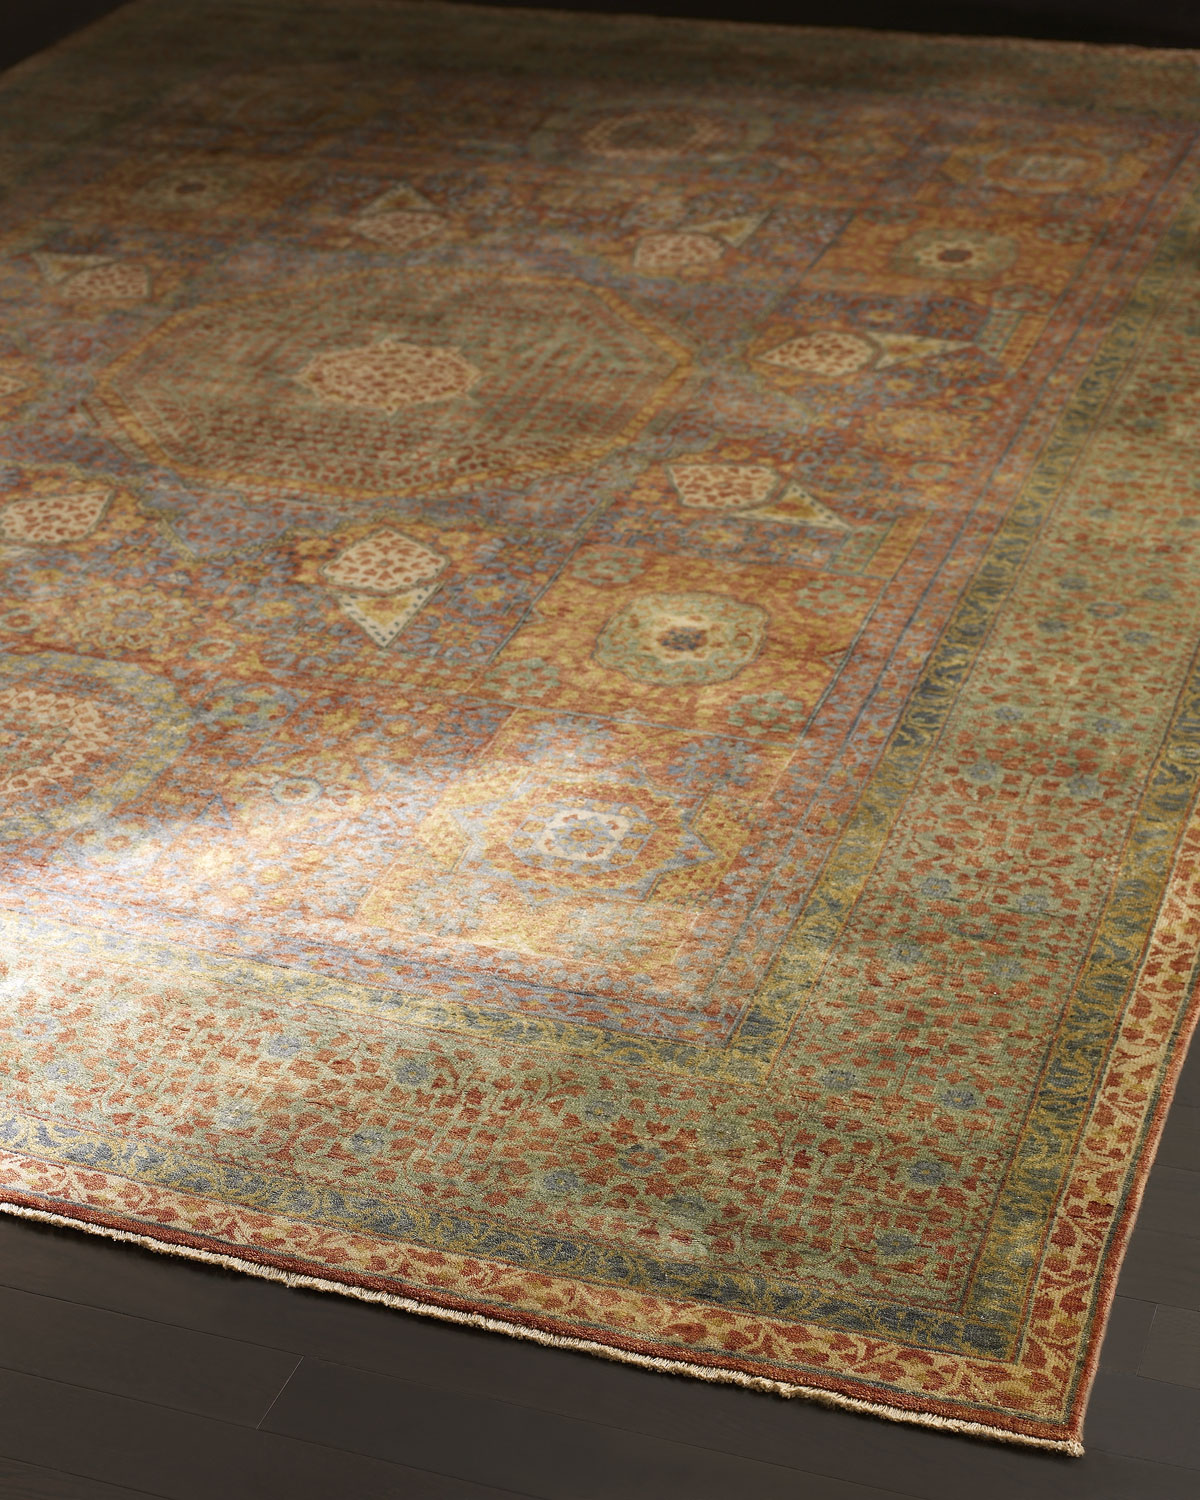 Exquisite Rugsgable Colors Rug 12 X 15